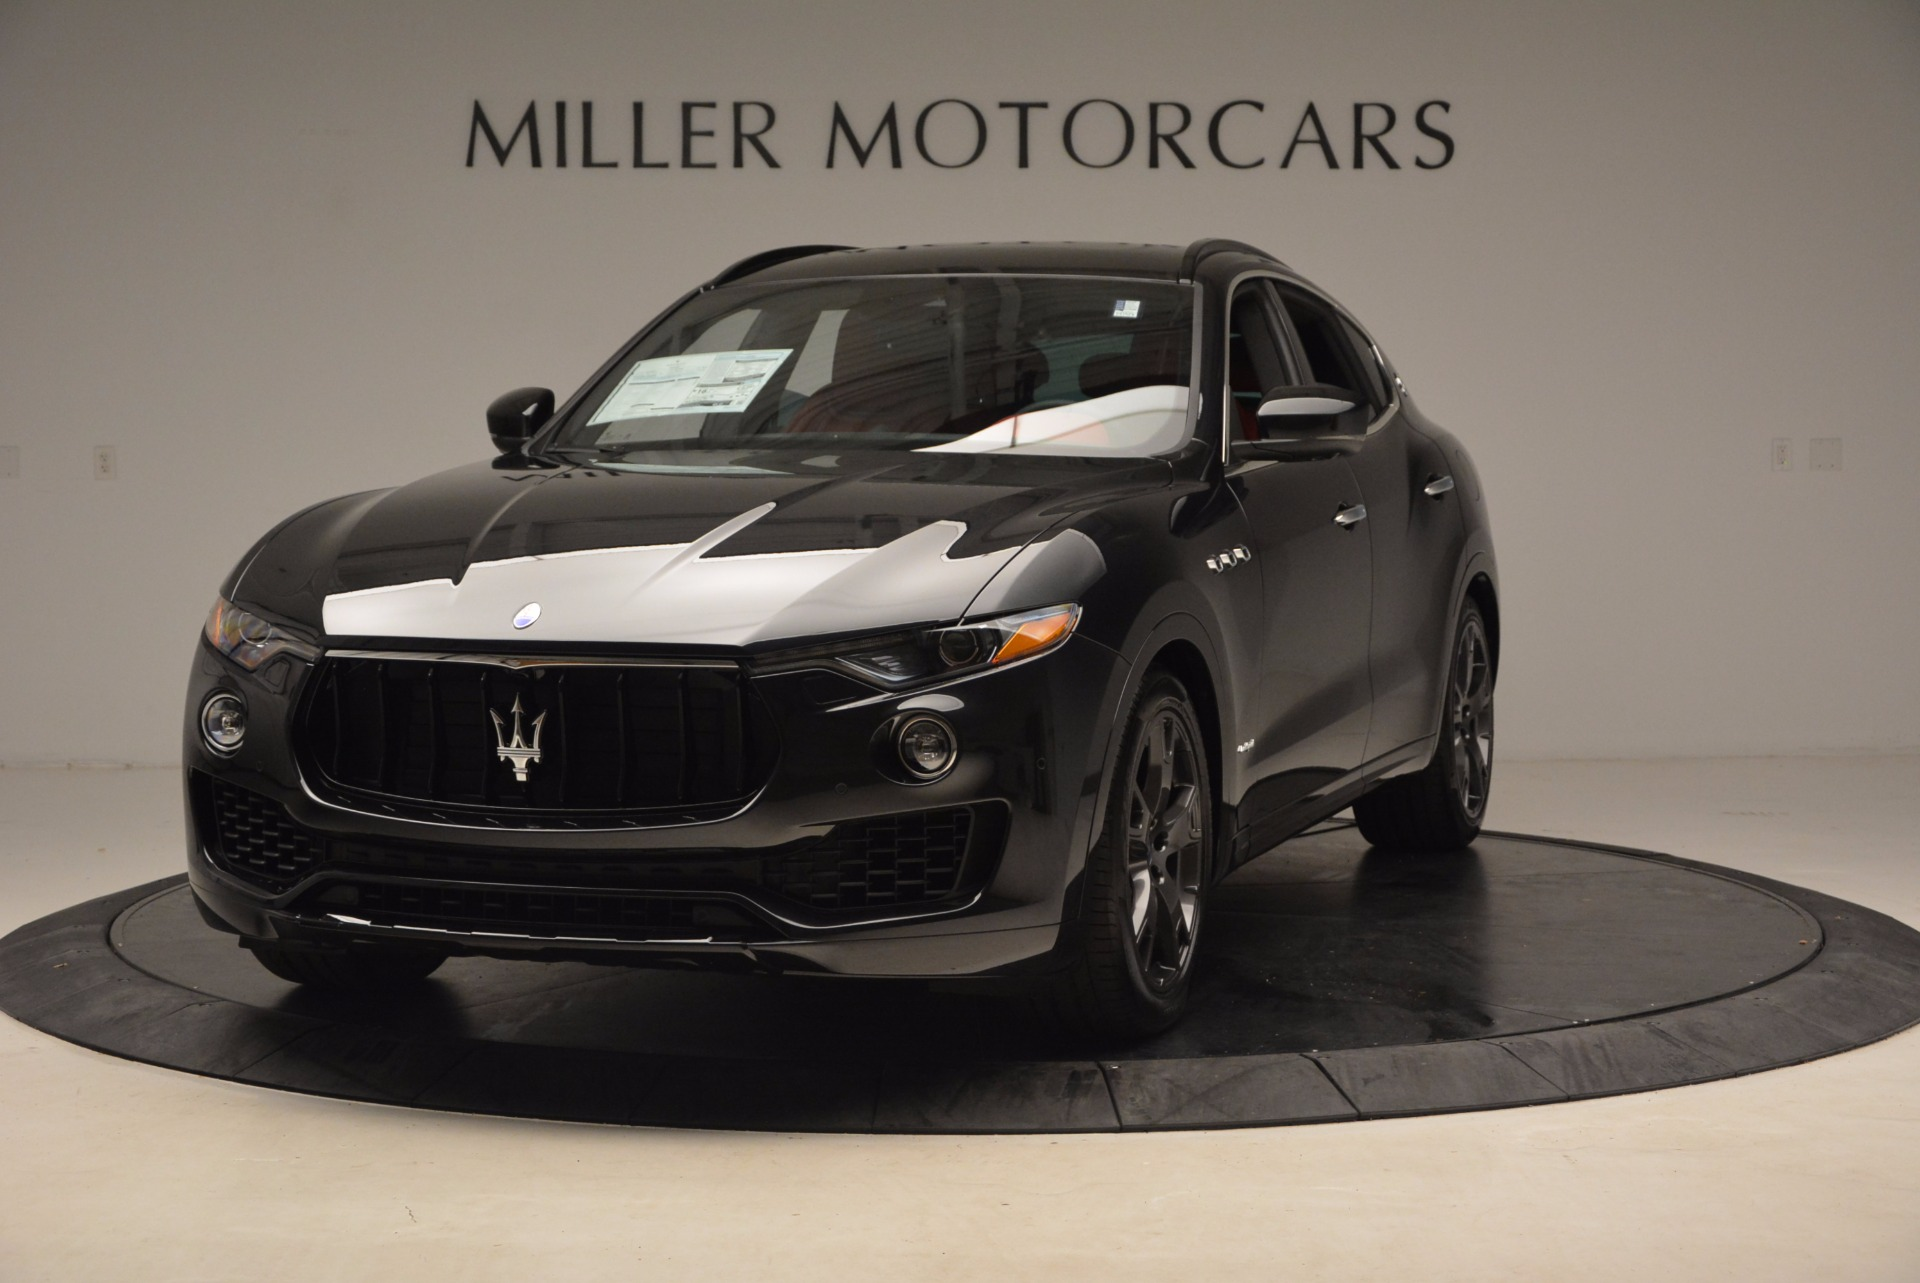 New 2018 Maserati Levante S Q4 for sale Sold at Bentley Greenwich in Greenwich CT 06830 1